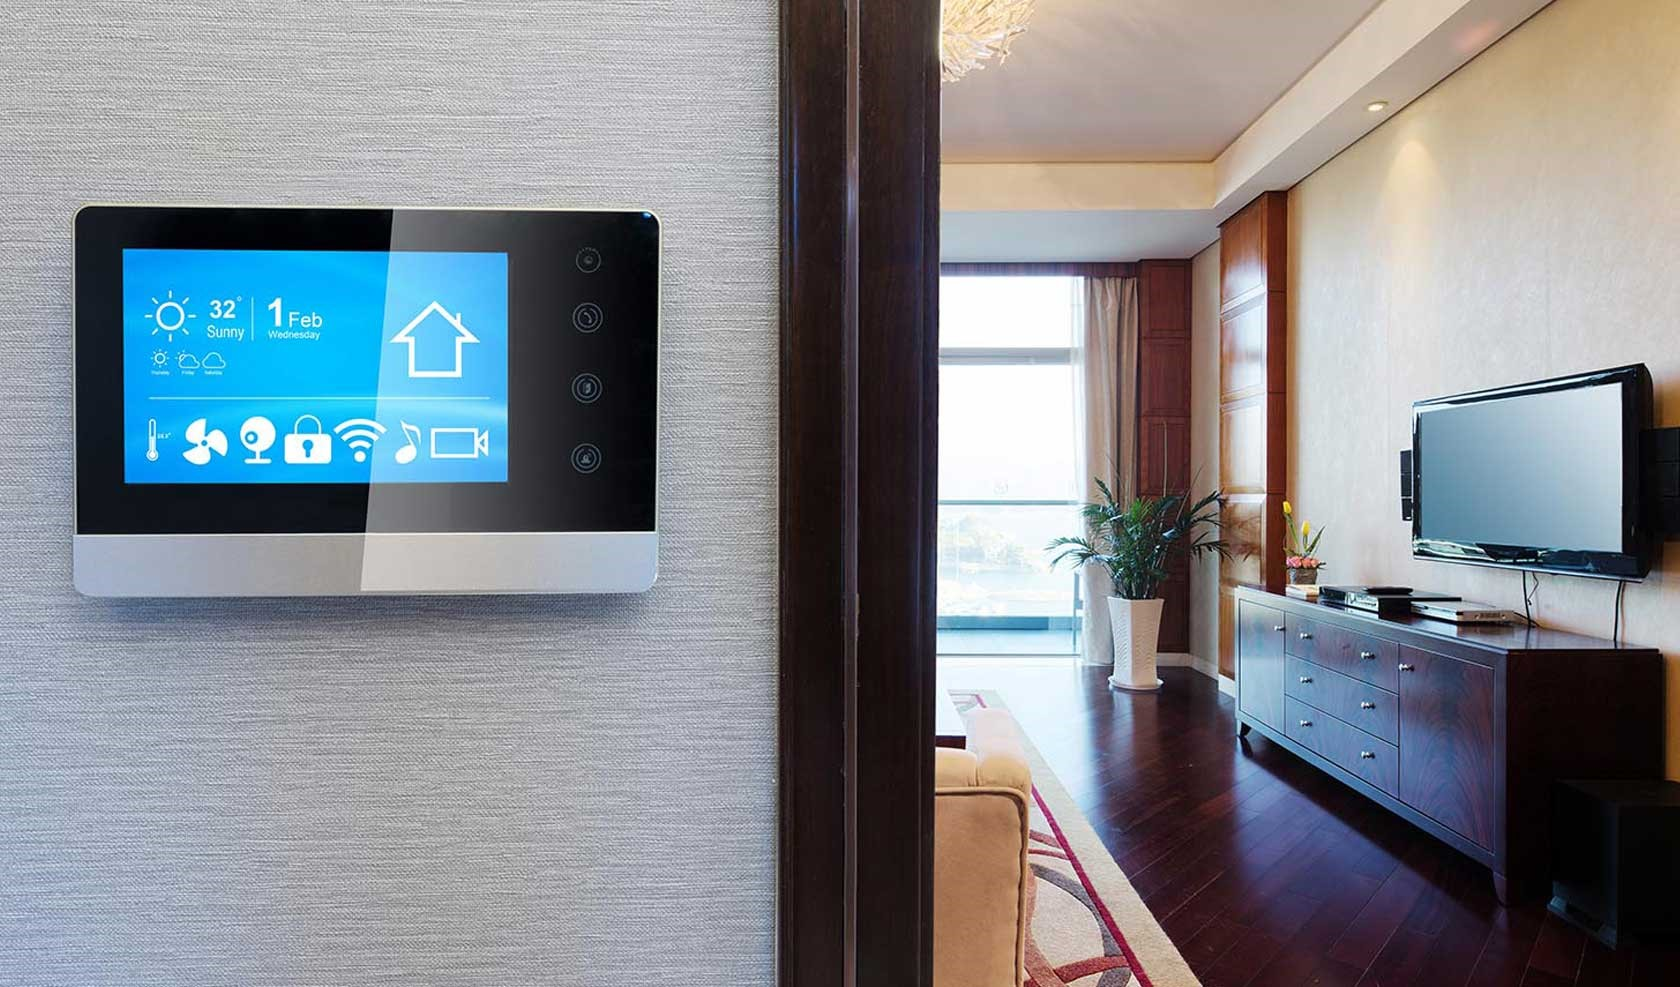 Home-Security All about Control4 and the Google Assistant